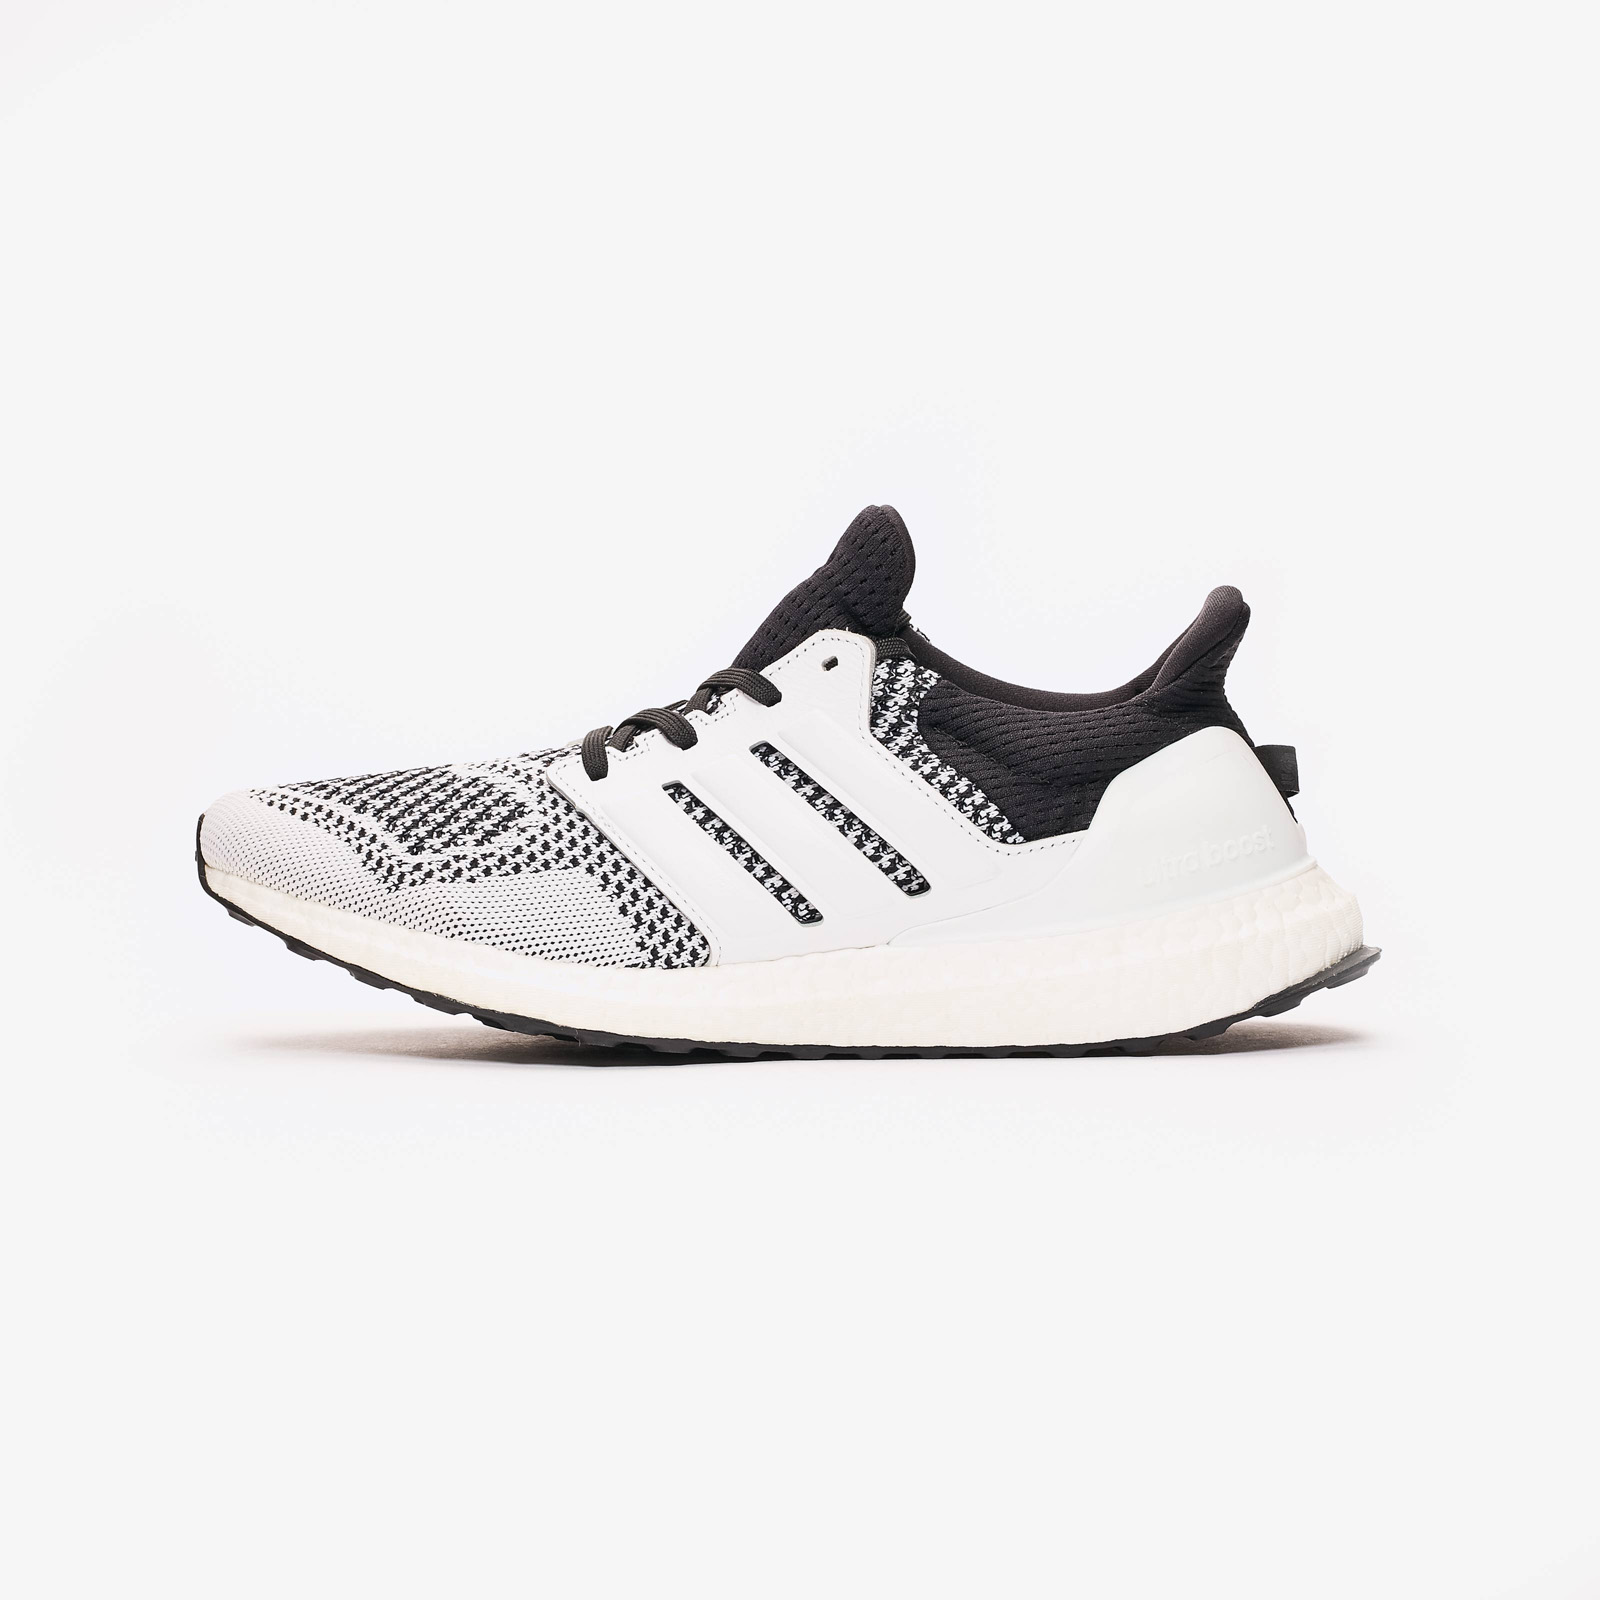 3312934bb6a81 adidas UltraBOOST - Af5756 - Sneakersnstuff